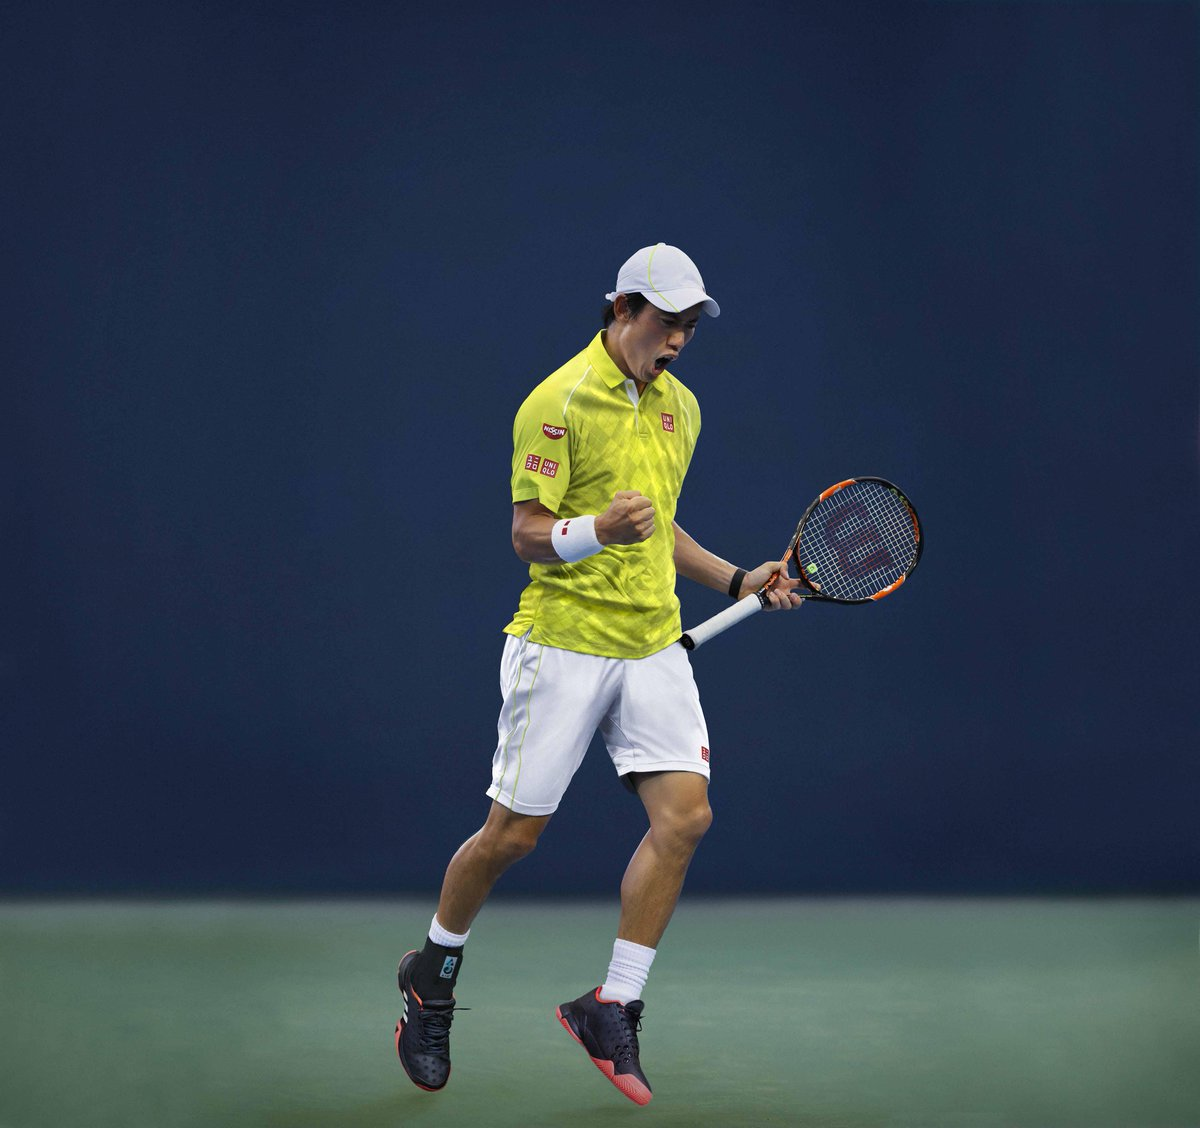 Our @usopen @DjokerNole and @keinishikori Match Wear is available online! Check it out: http://t.co/qOVyCvW5yT http://t.co/TQvooi8hJa